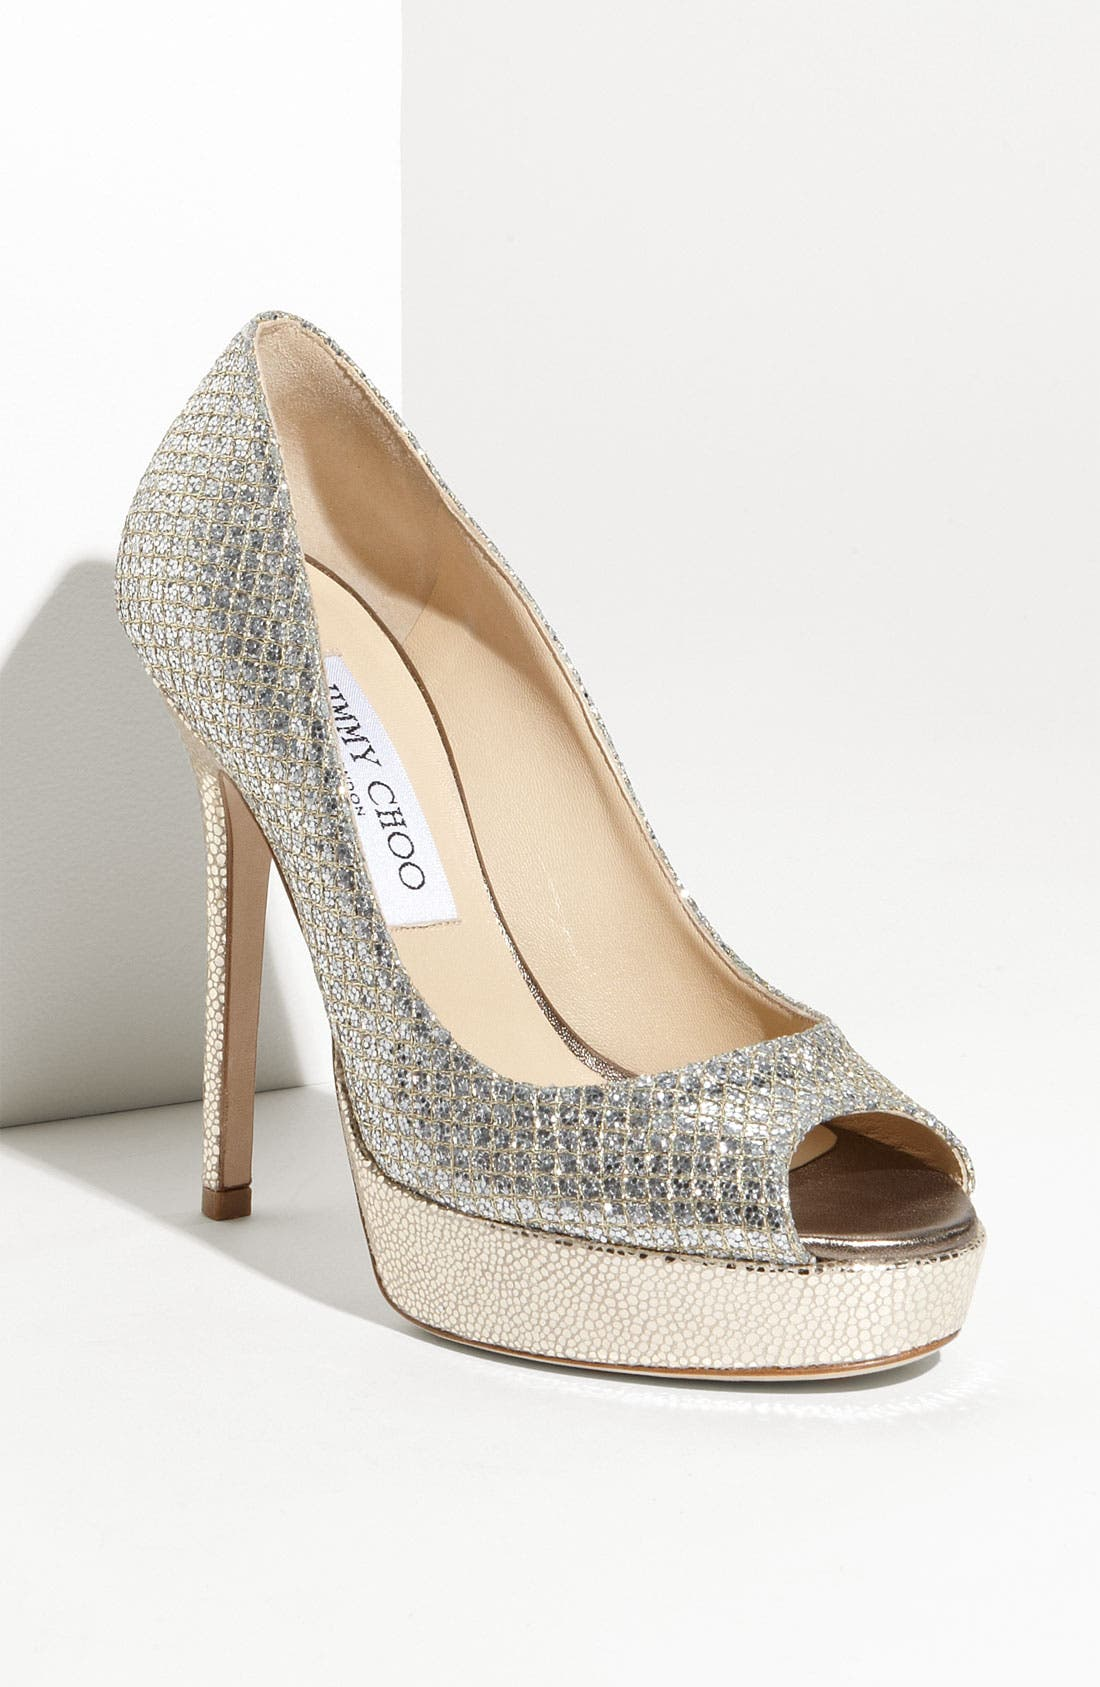 Main Image - Jimmy Choo 'Crown' Pump